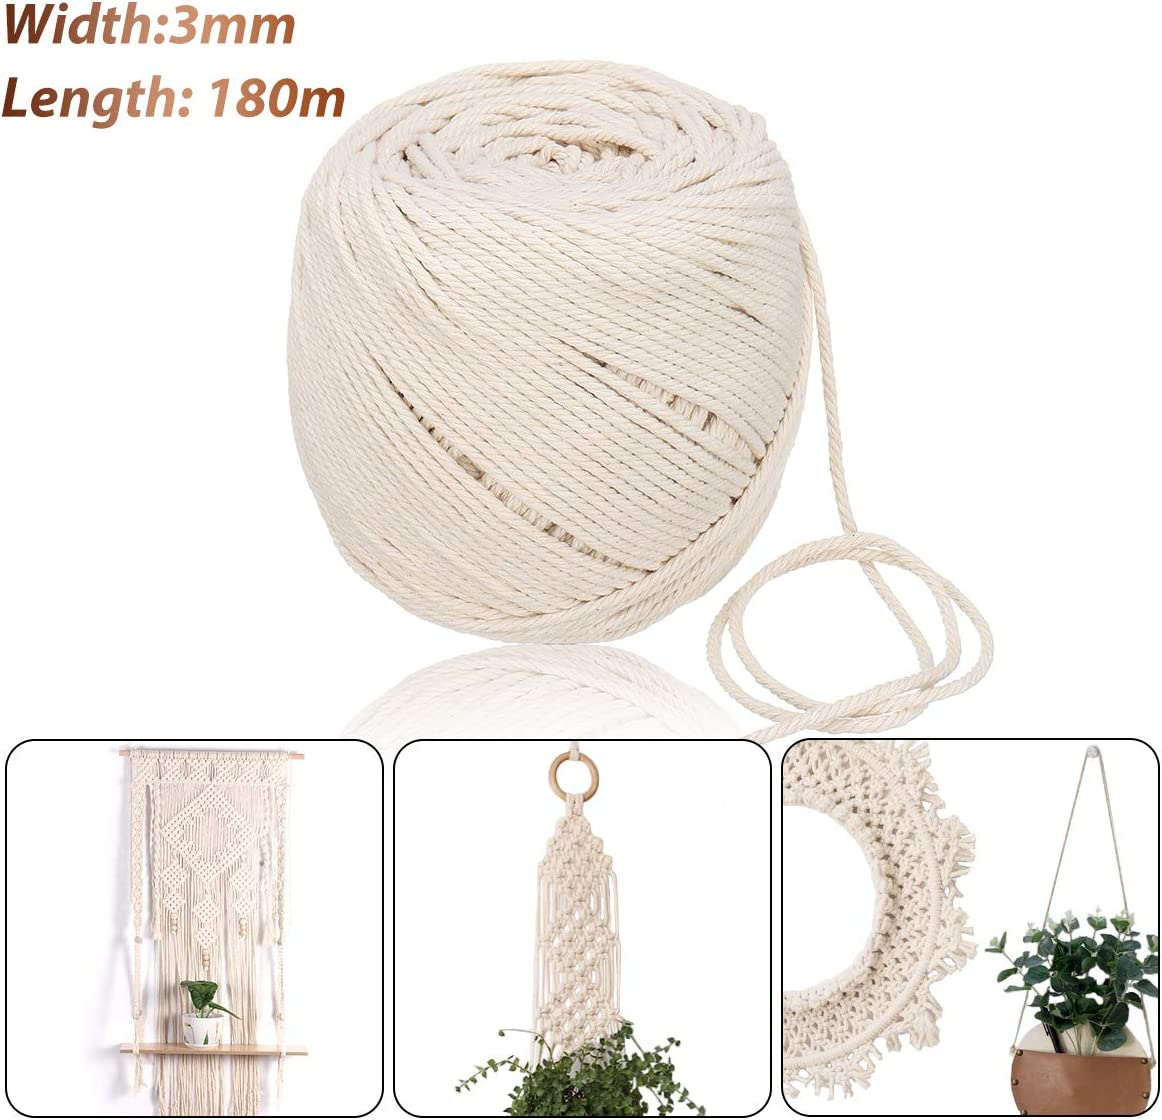 Jeteven 3mm x 180m Cuerda Cordel de Algodón Hilo Macramé 100% Natural Trenzado Algodón DIY Planta de Colgar en la Pared Percha Hecha a Mano Craft para Decoración Interior Decoración Bohemia: Amazon.es: